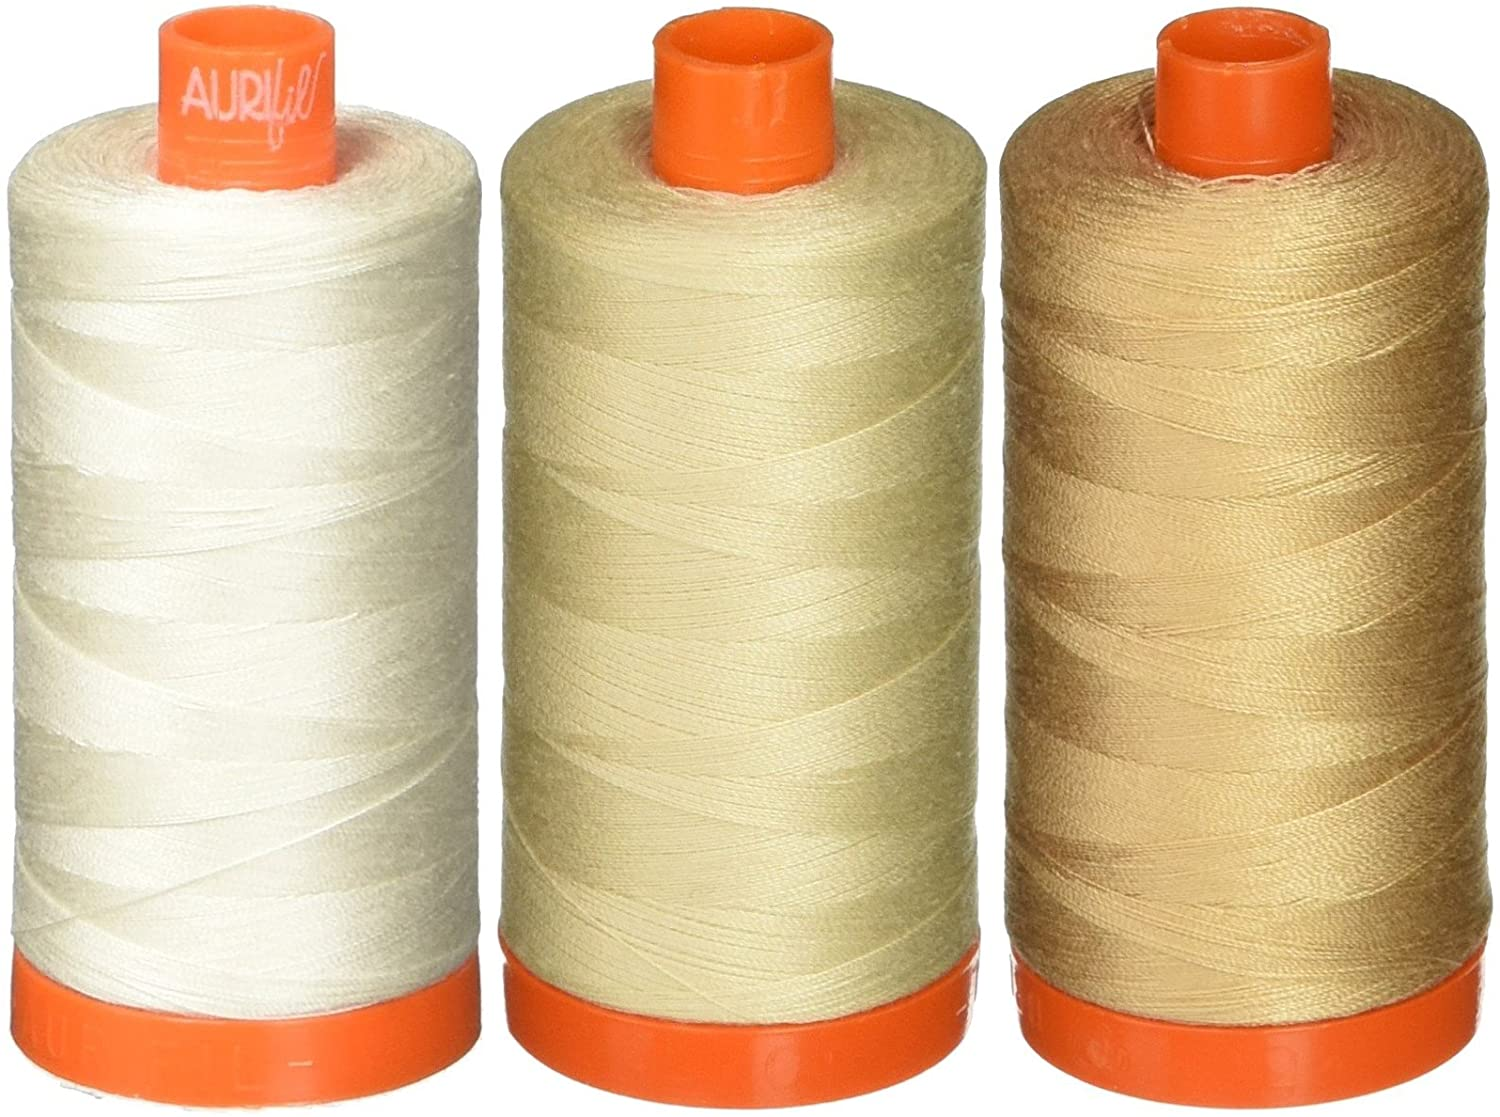 3-Pack - Aurifil 50WT - Muslin + Light Beige + Beige, Solid - Mako Cotton Thread - 1422Yds Each